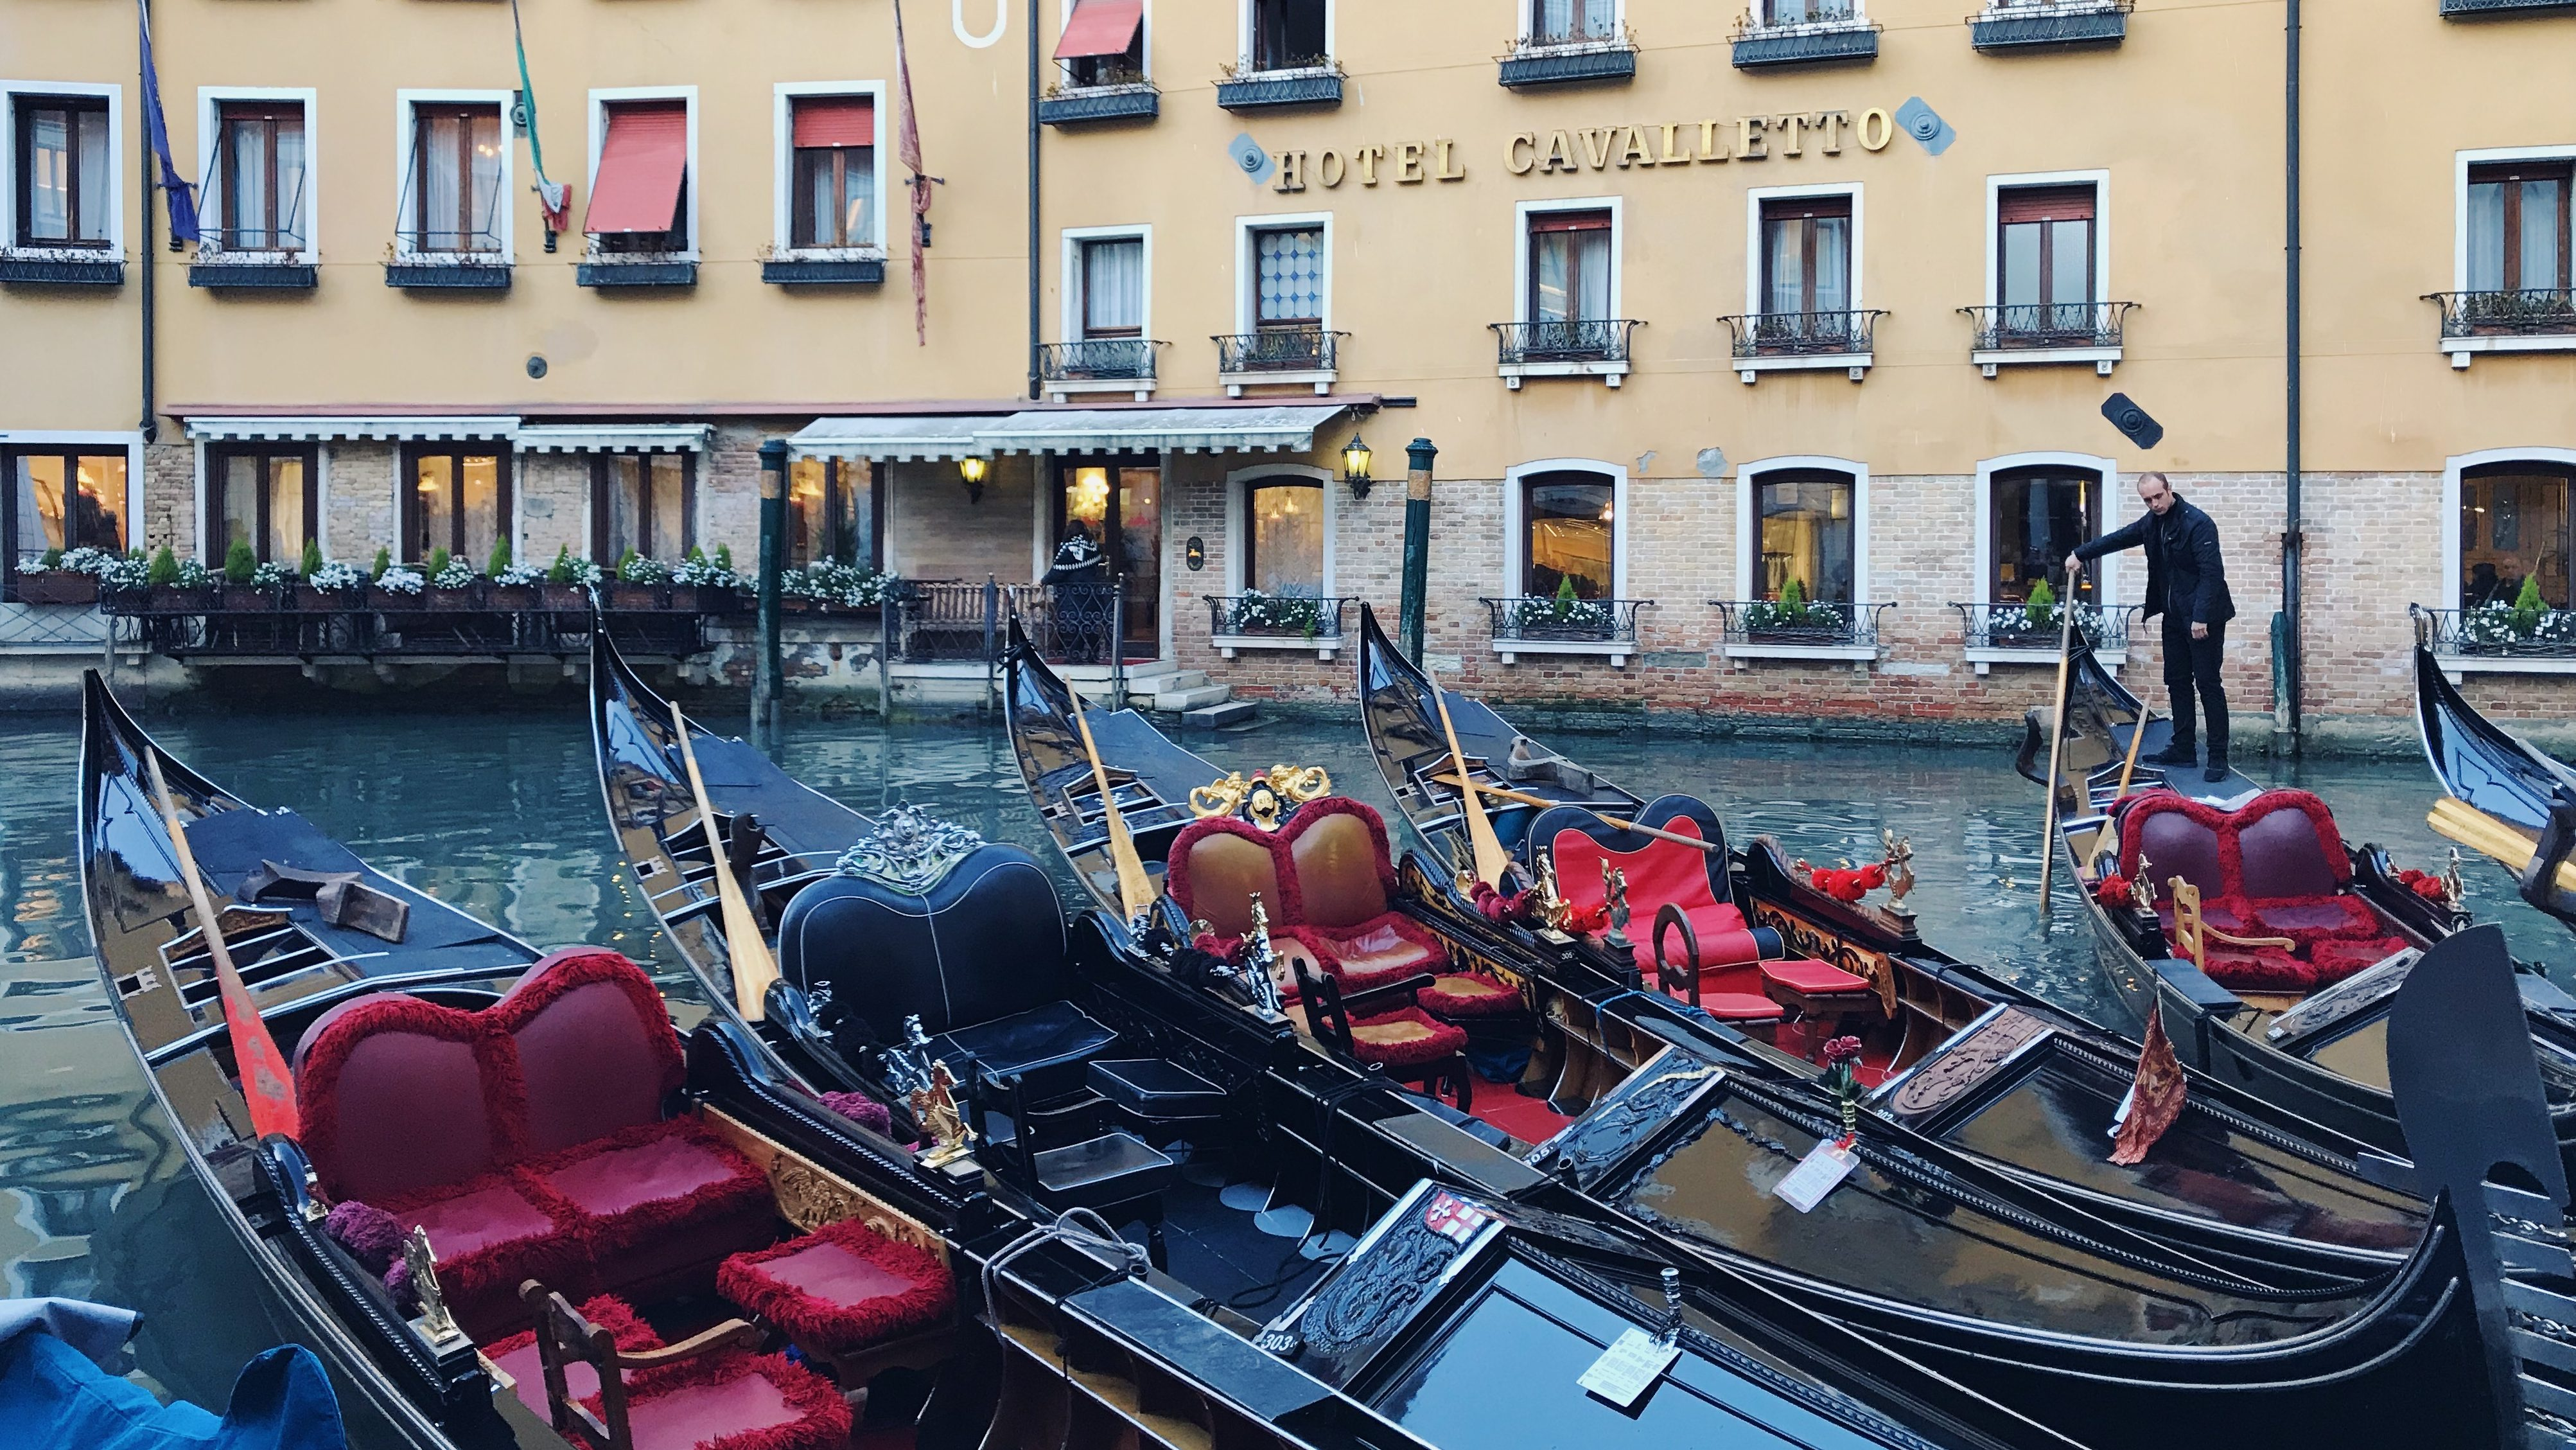 The famous gondolas of Venice, waiting to be taken out for a tour. Photo by Rachel Cessna